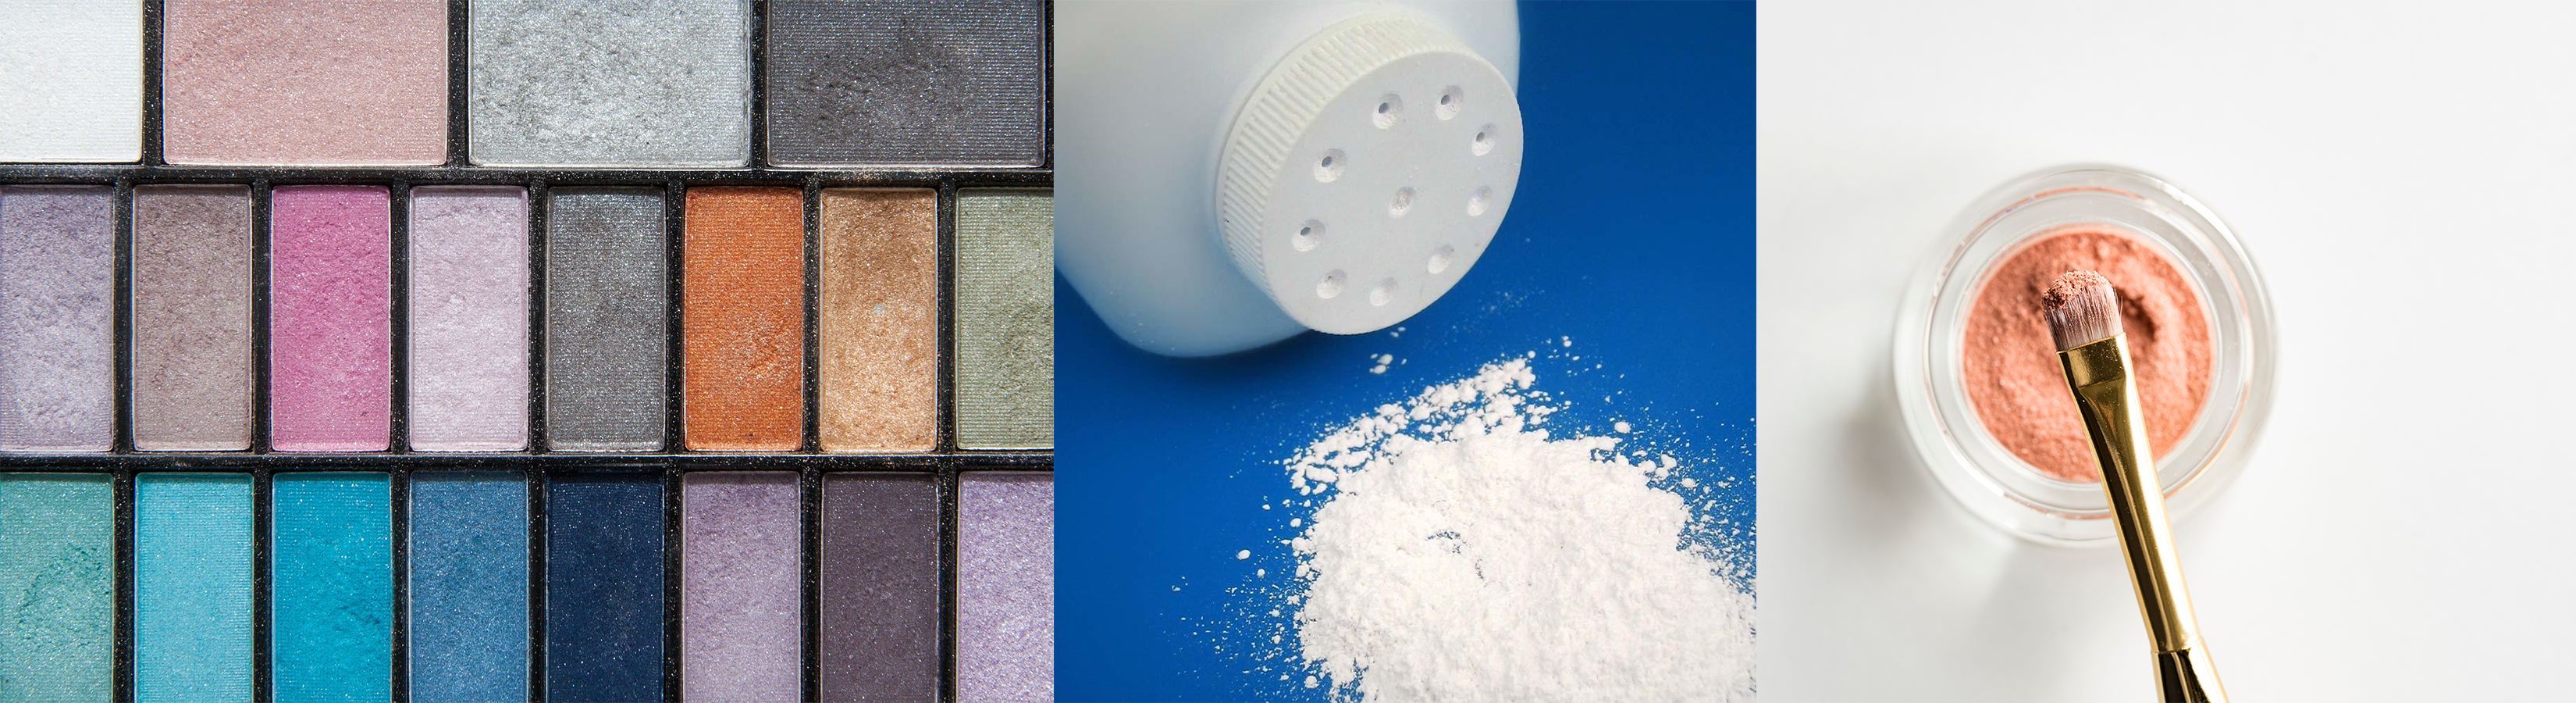 Talc is used in consumer products